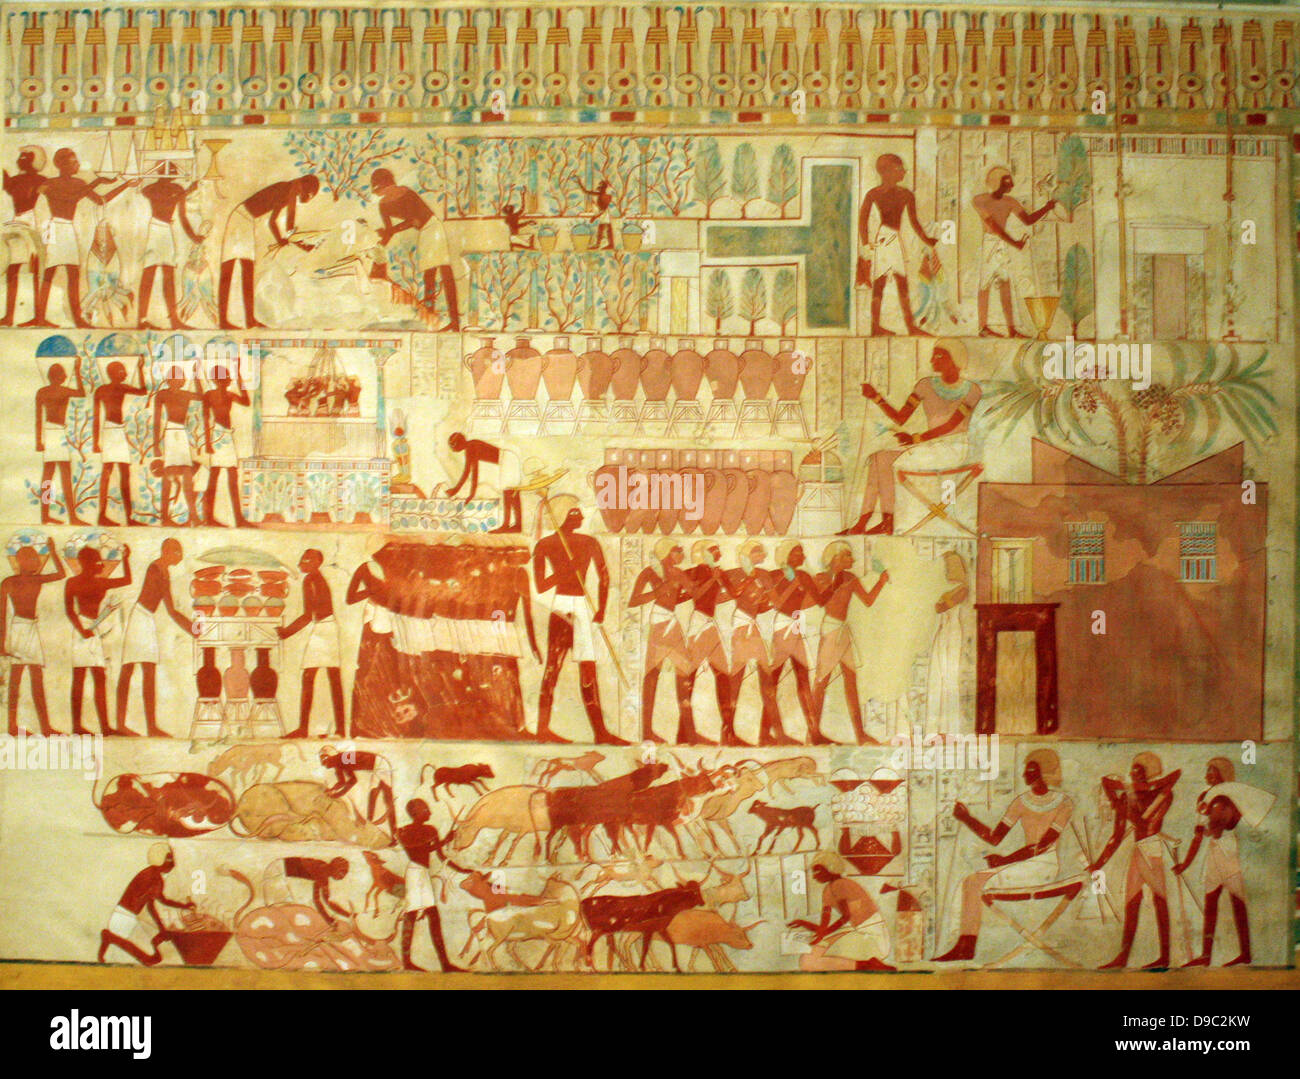 Egyptian Wall Paintings From The New Kingdom, Facsimies Of Ancient Egyptian  Wall Decoration. They Are Accurate Copies Of